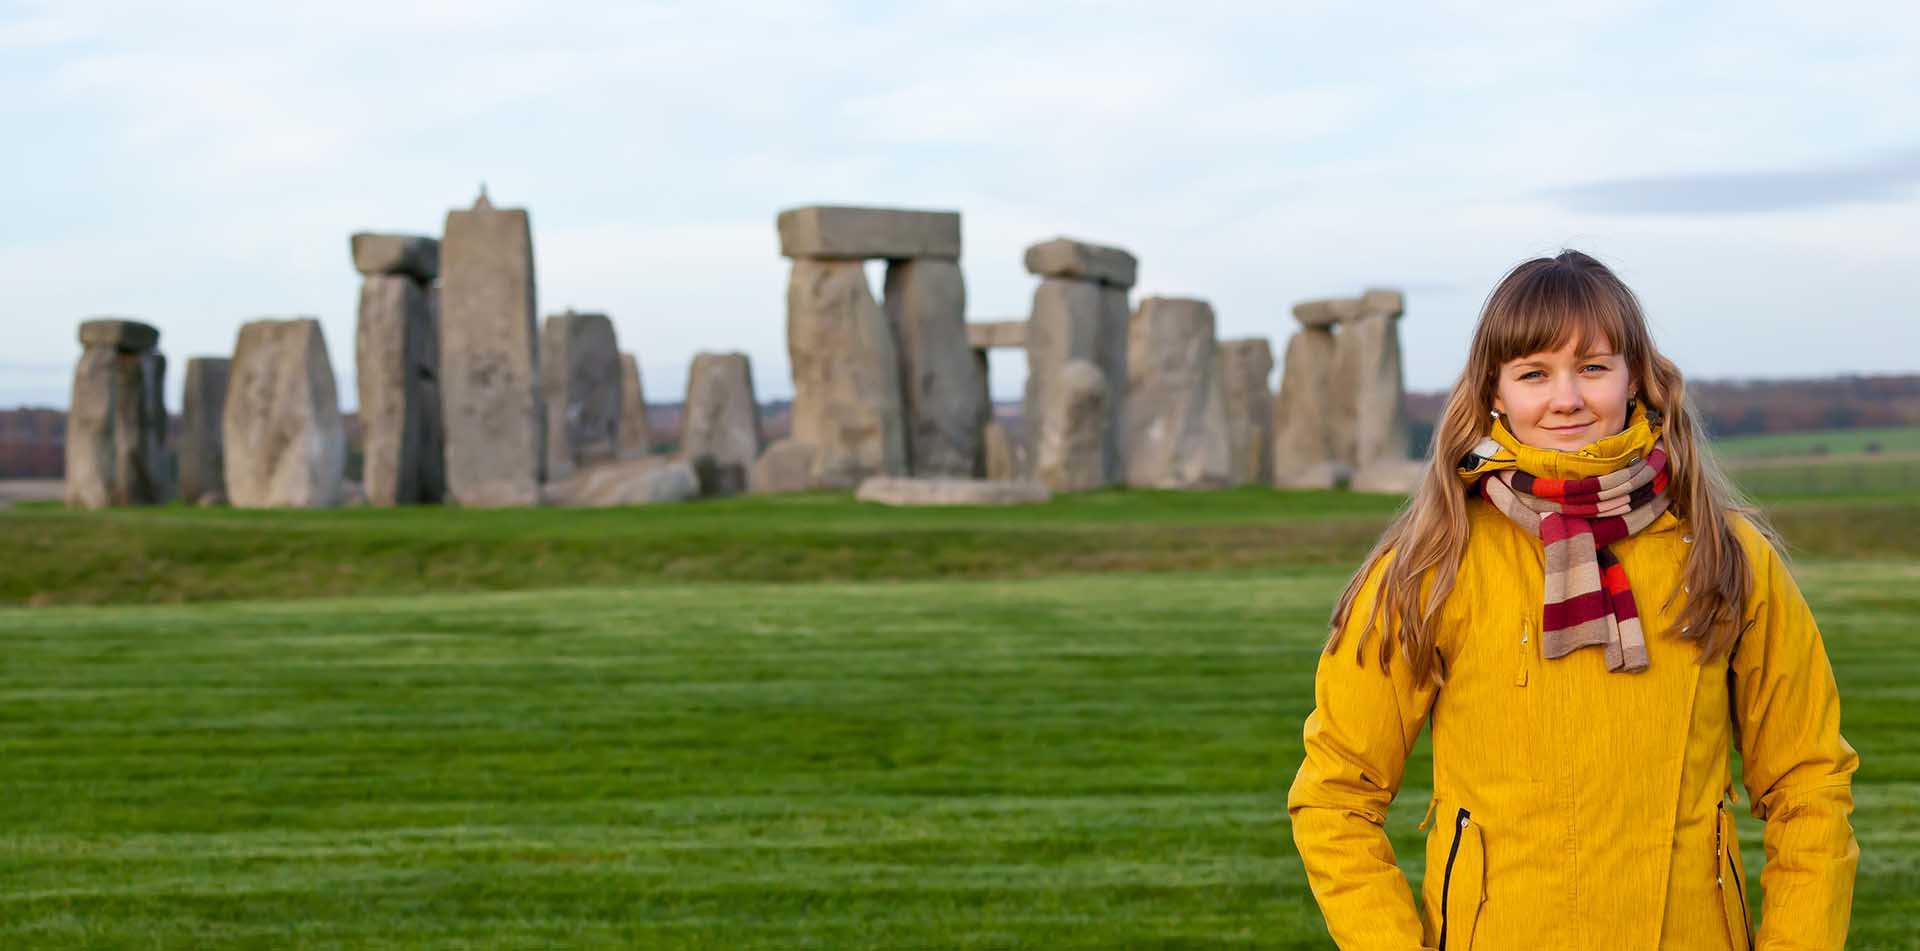 Europe United Kingdom England Cotswolds green meadows stonehenge - luxury vacation destinations